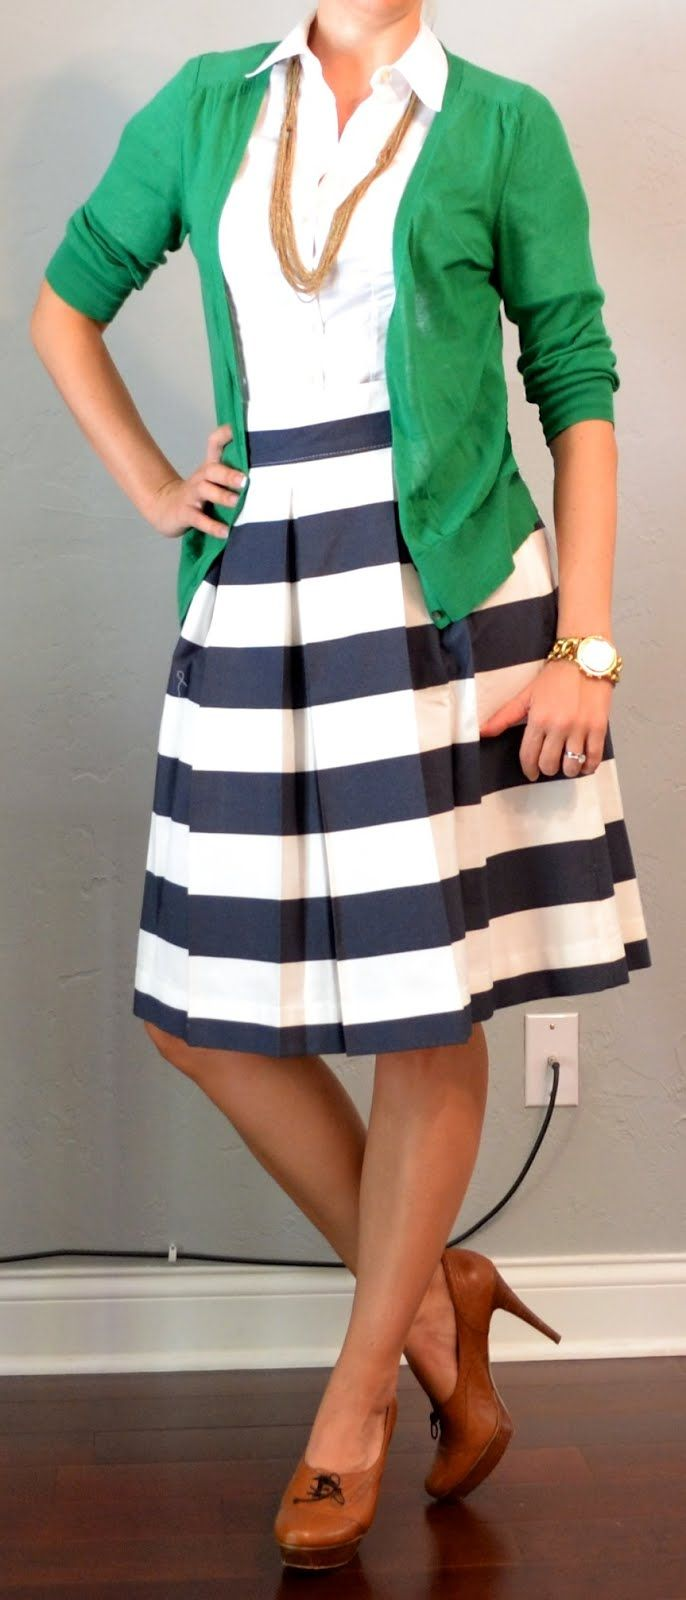 : Colors Combos, Outfits Posts, Green Cardigans, Cute Outfits, Stripes Skirts, Striped Skirts, Kelly Green, Work Outfits, Teacher Outfits